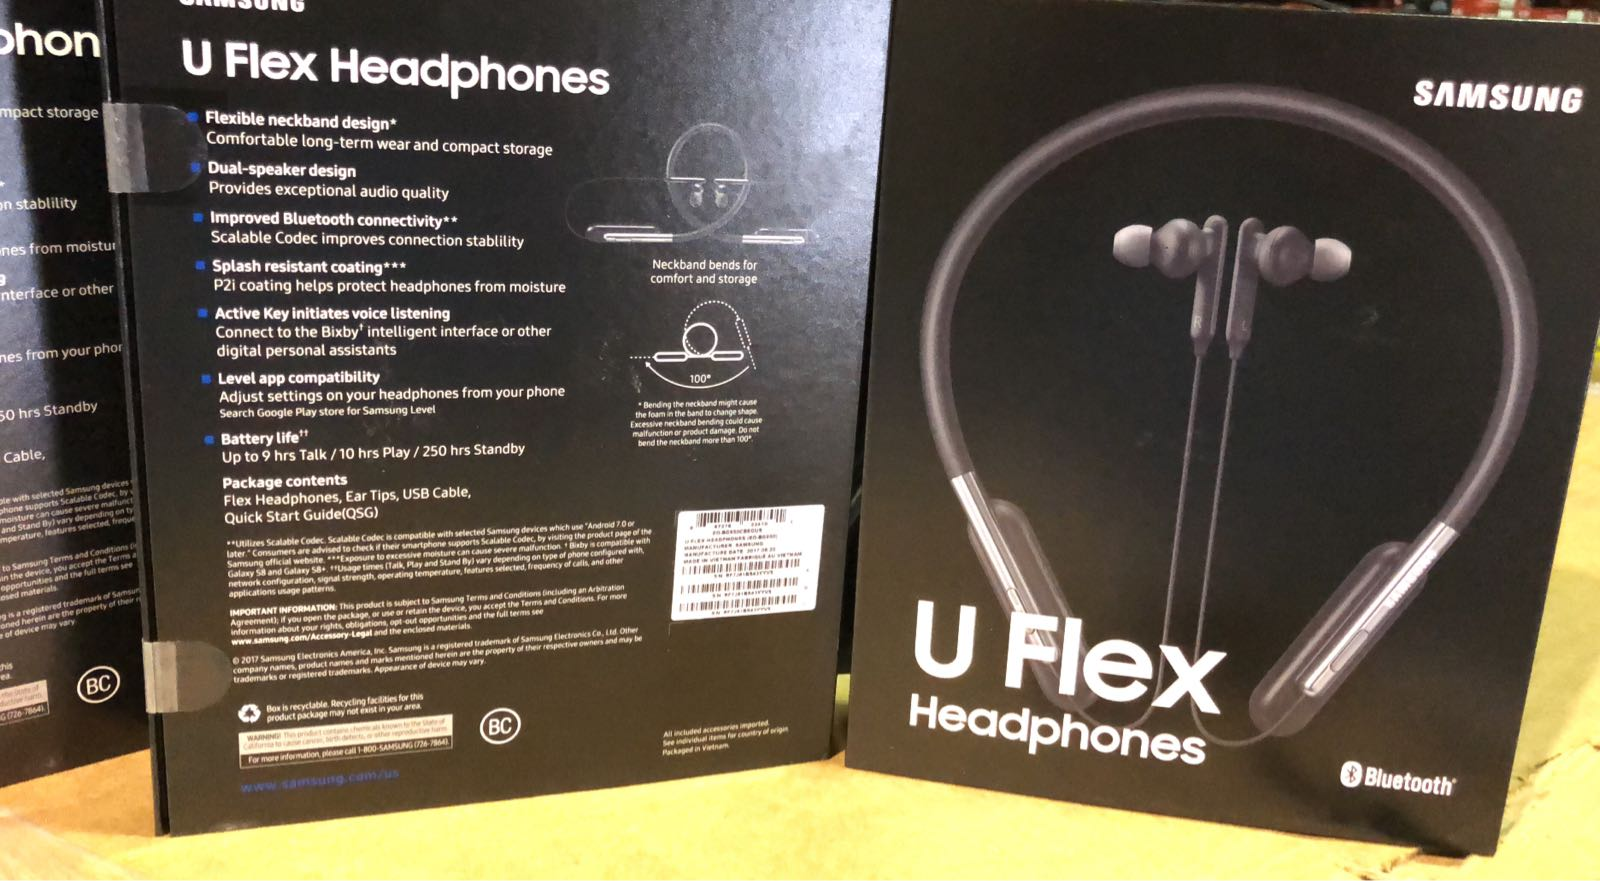 ✨LOW PRICE | SAMSUNG U FLEX BLUETOOTH HEADPHONES✨ 🚨MODEL: EO-BG950CBEGUS $37 FOB MIAMI🚨 PM for Quantity Pricing.